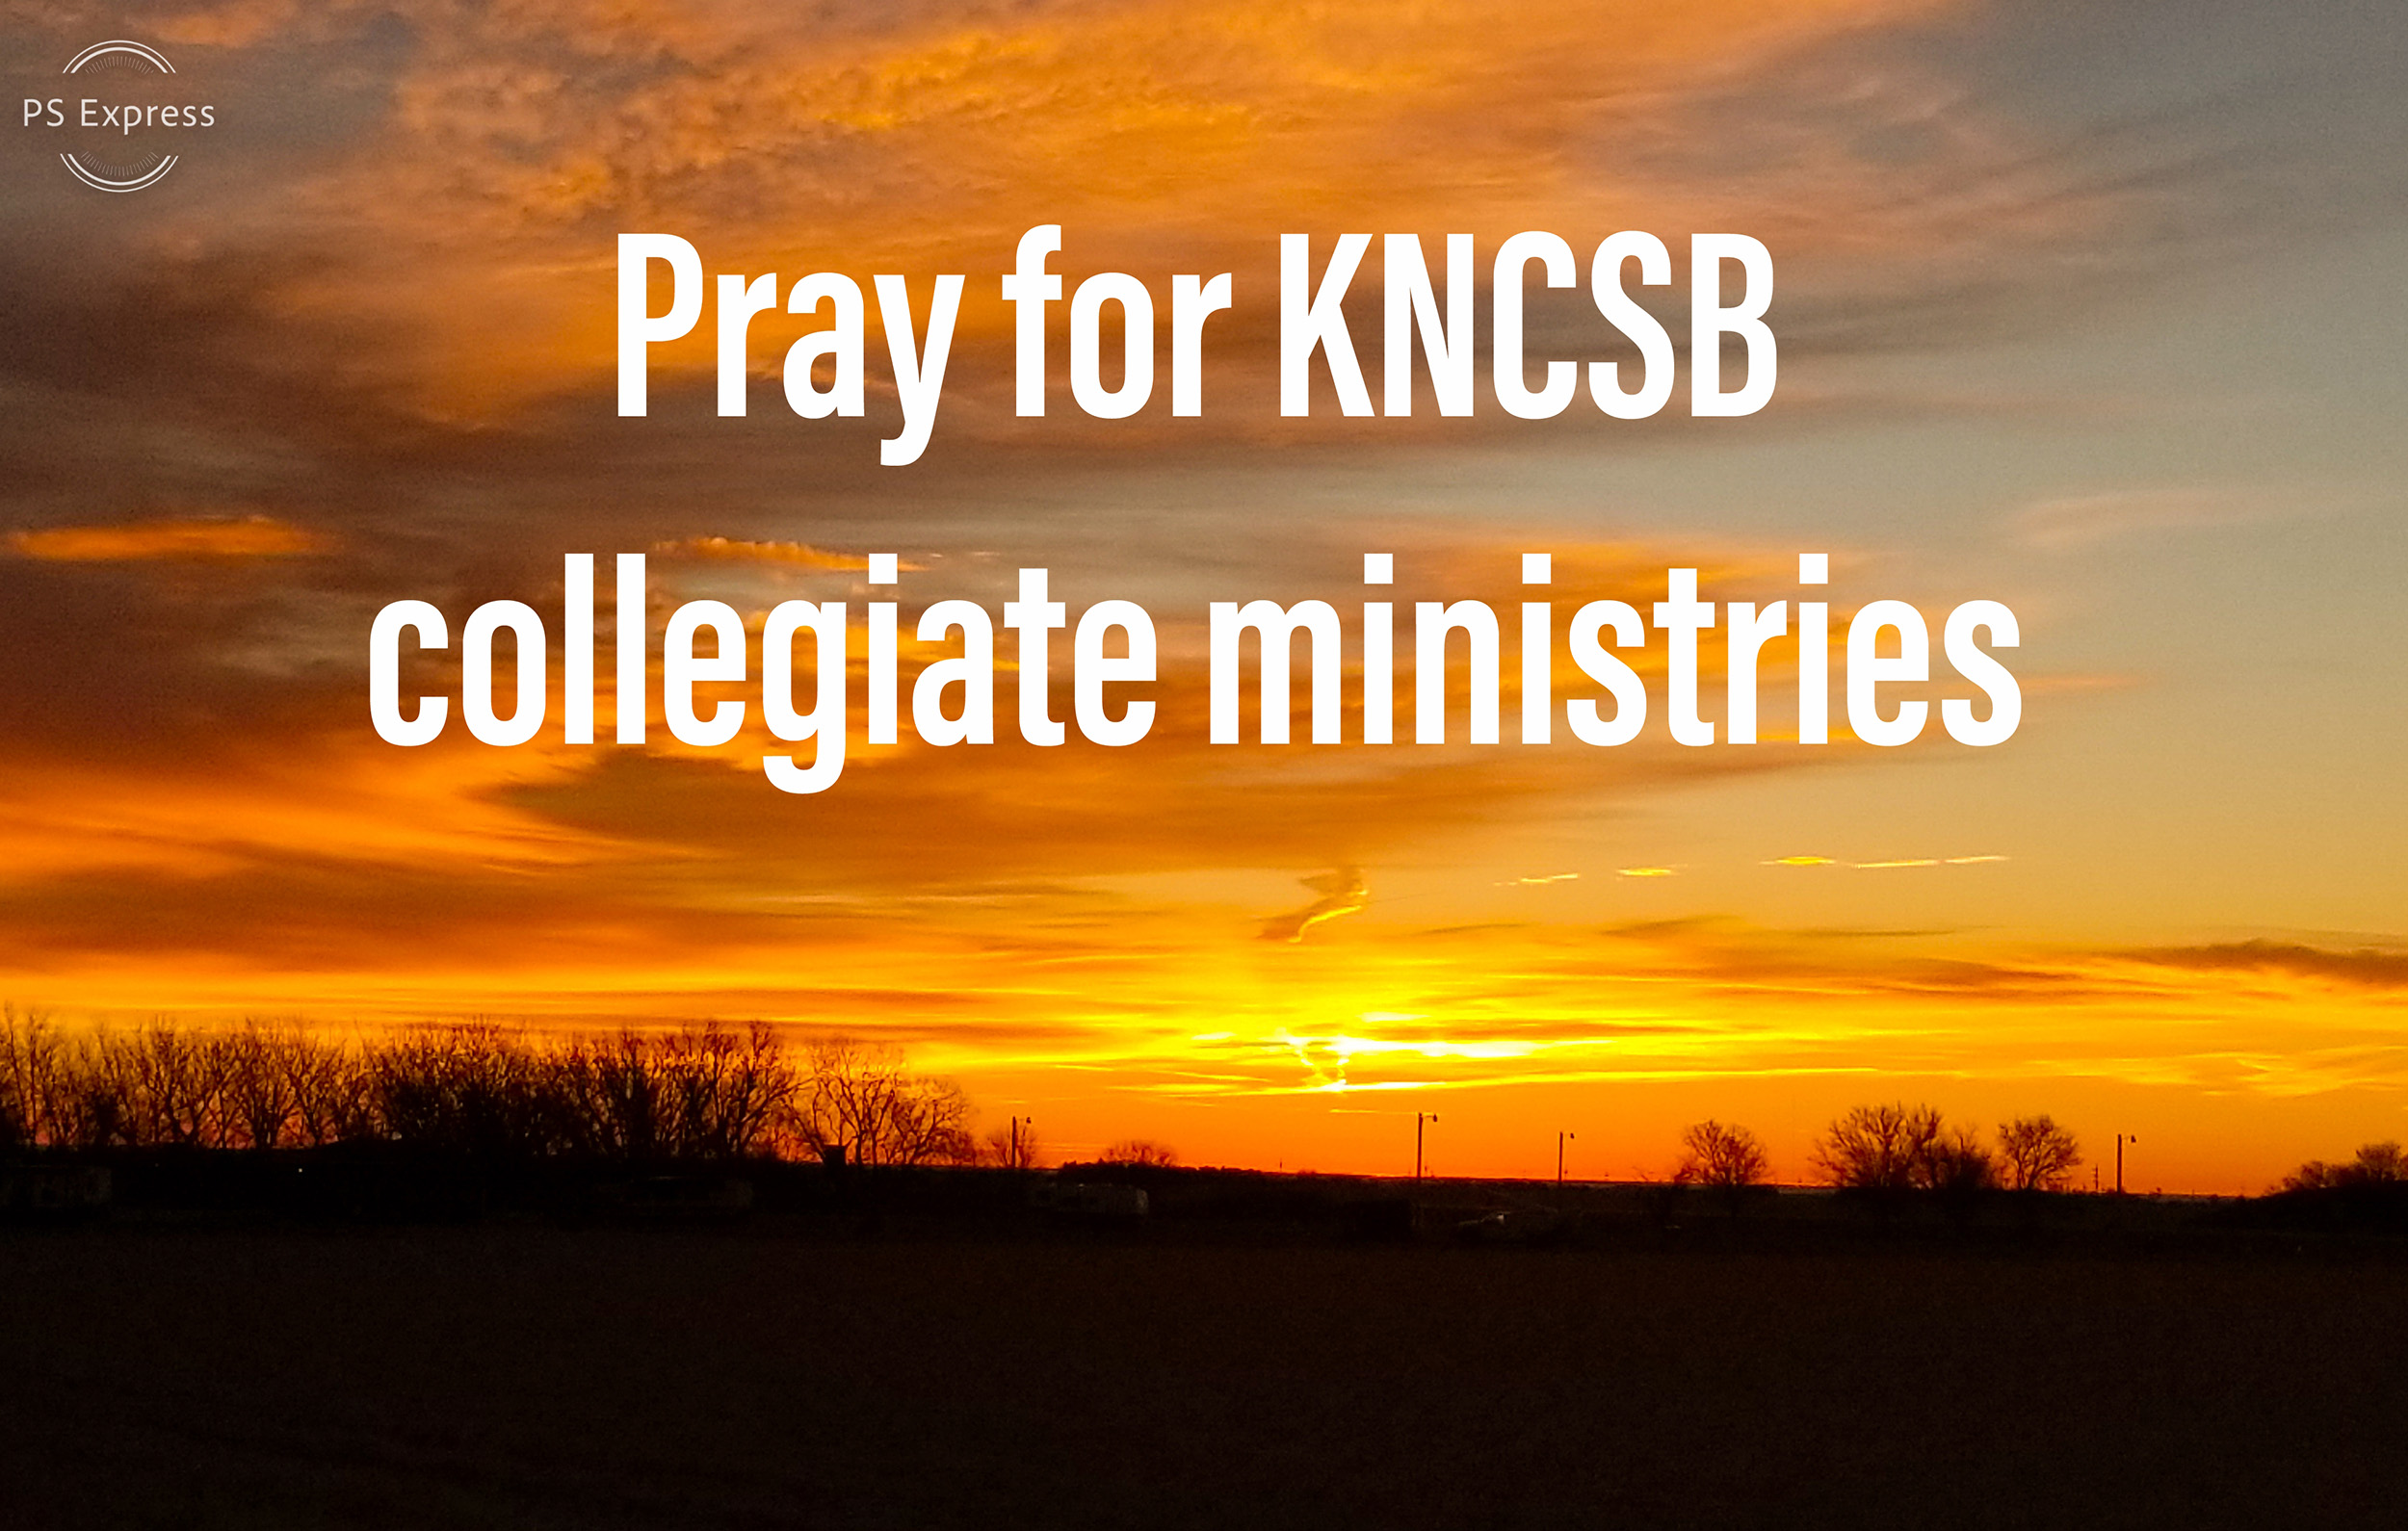 Collegiate ministries face unknowns this fall